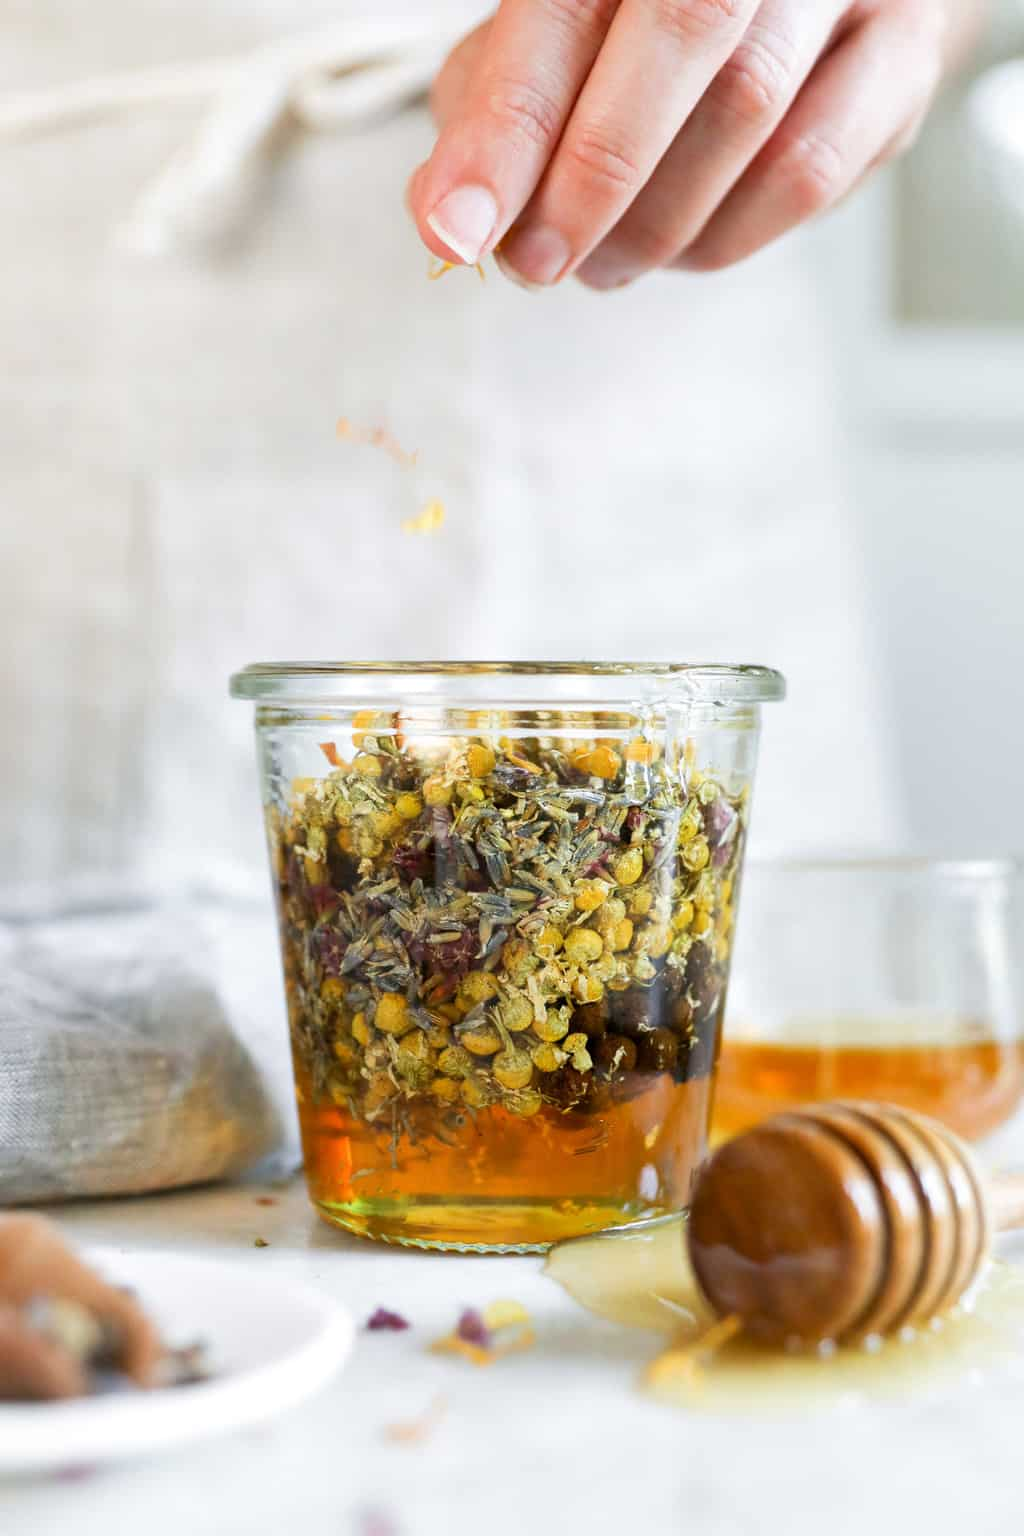 How to make infused honey by using herbs and spices